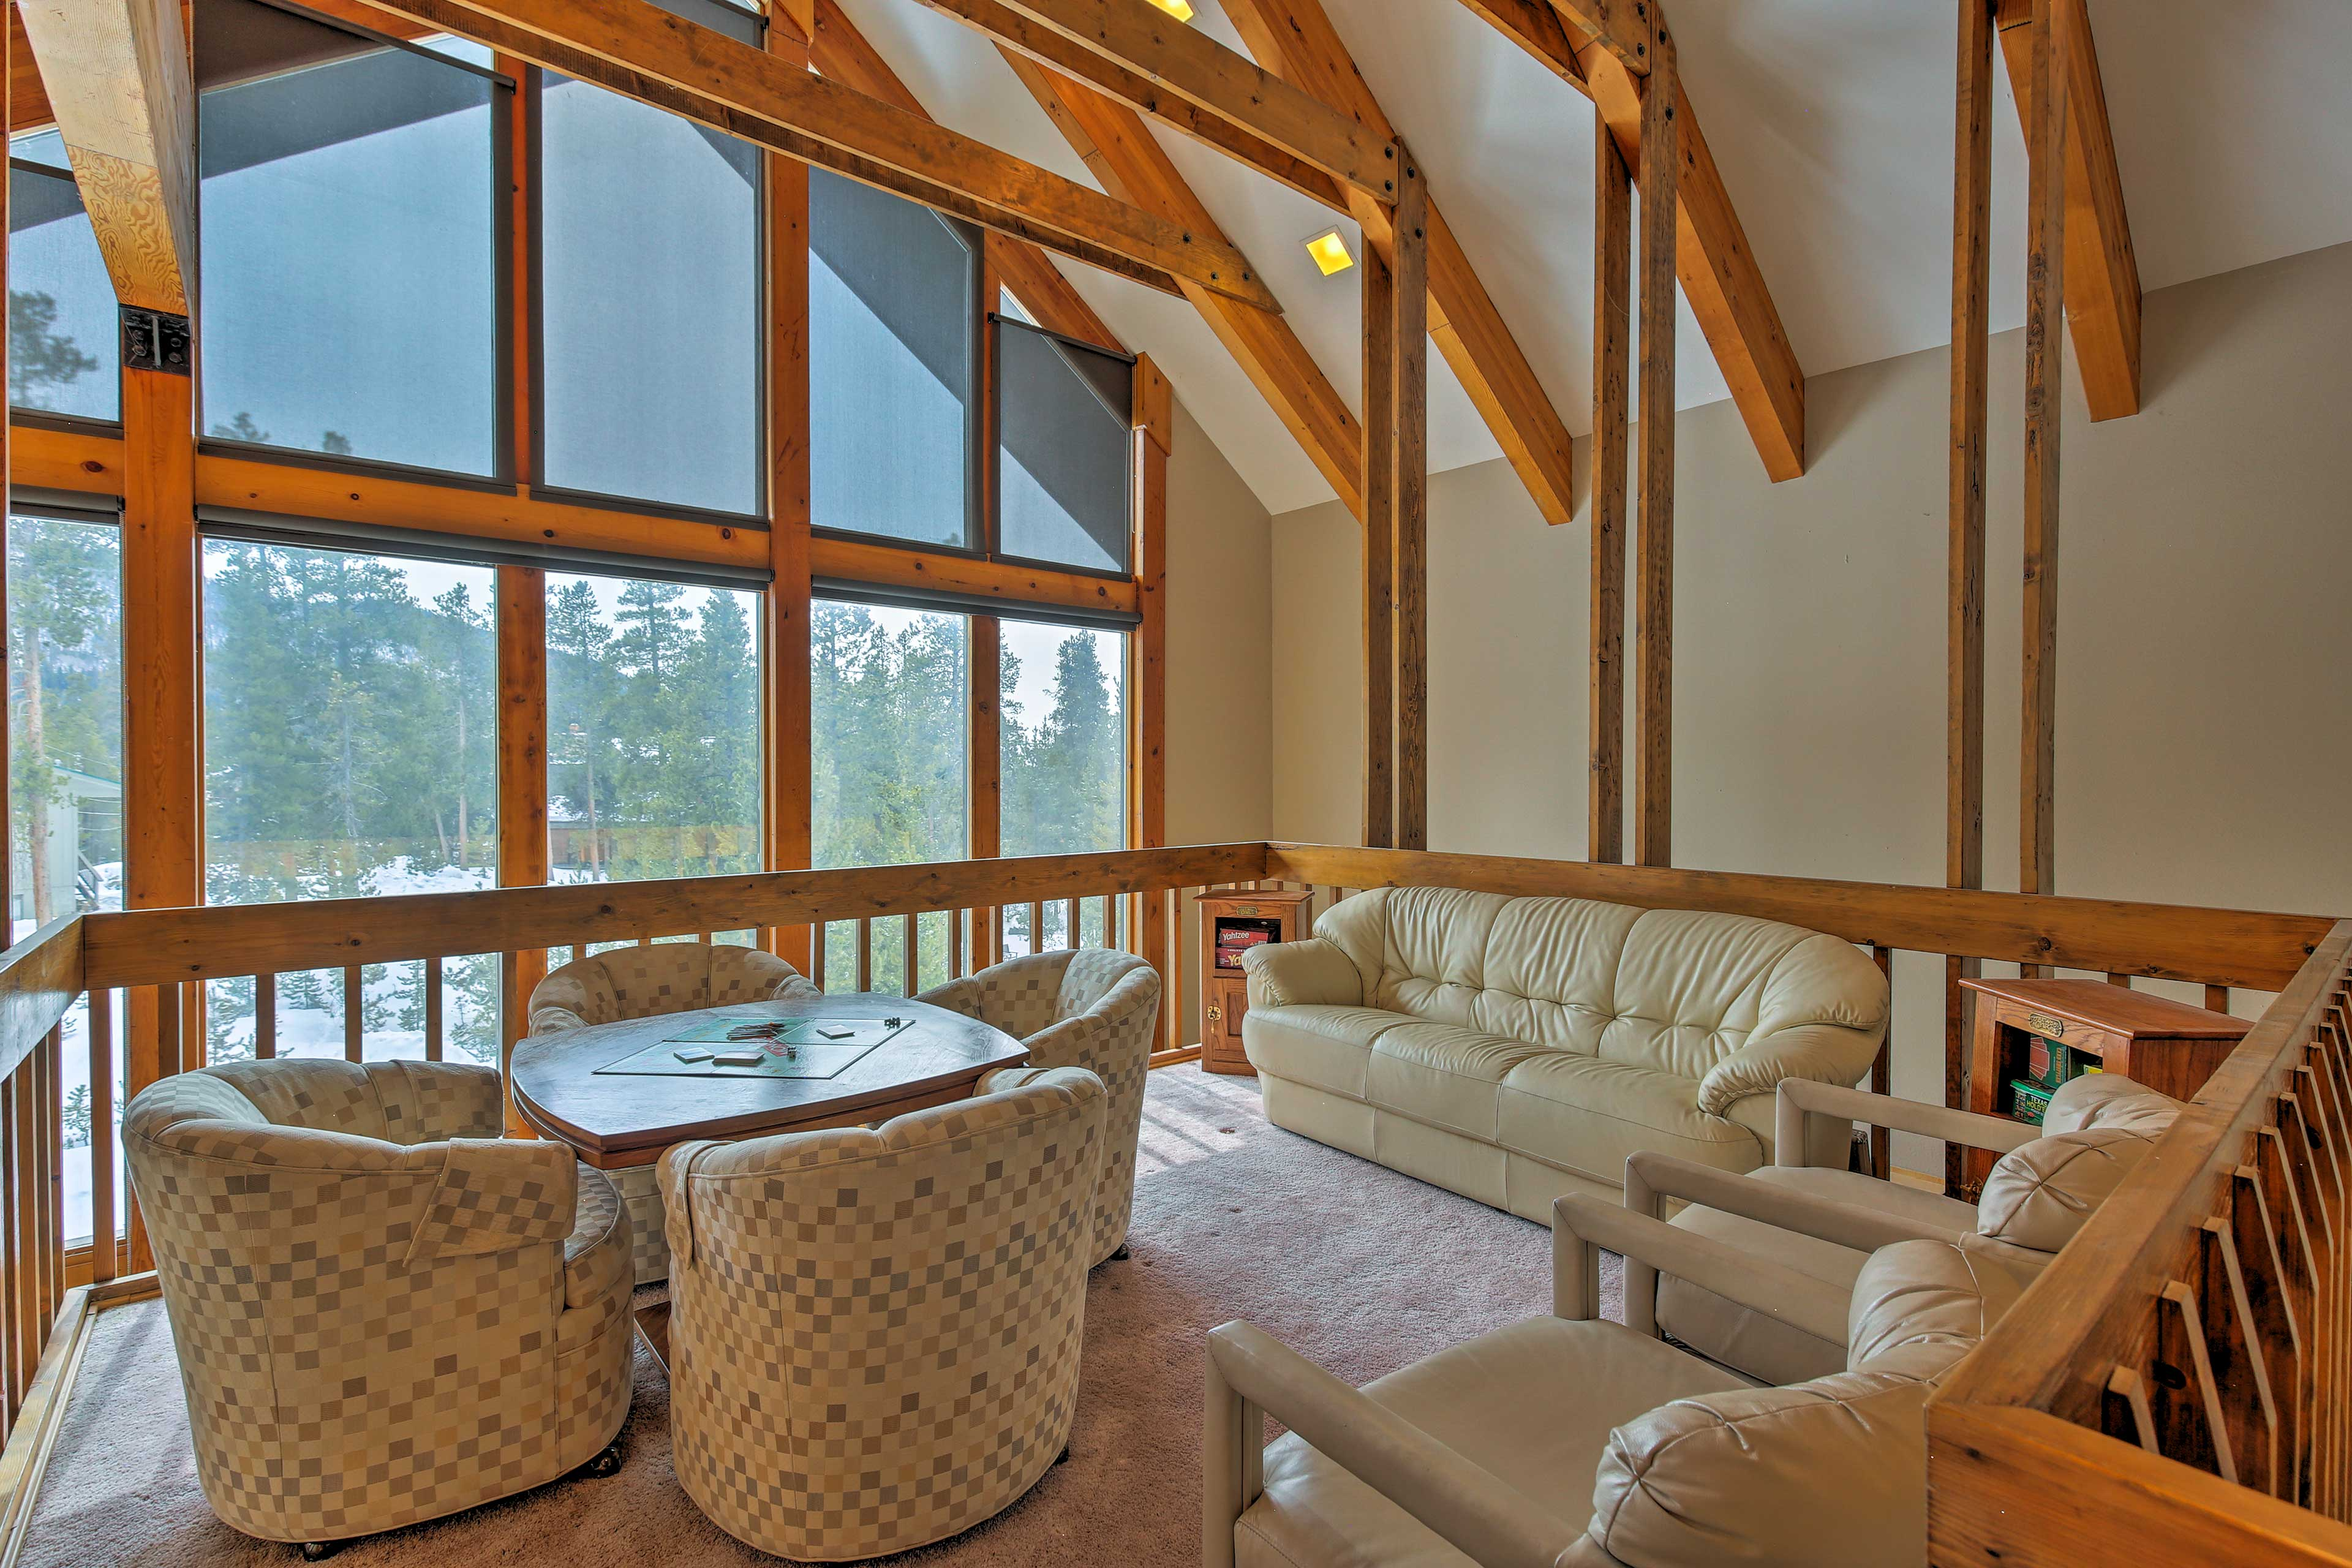 The views from the upstairs loft are breathtaking!